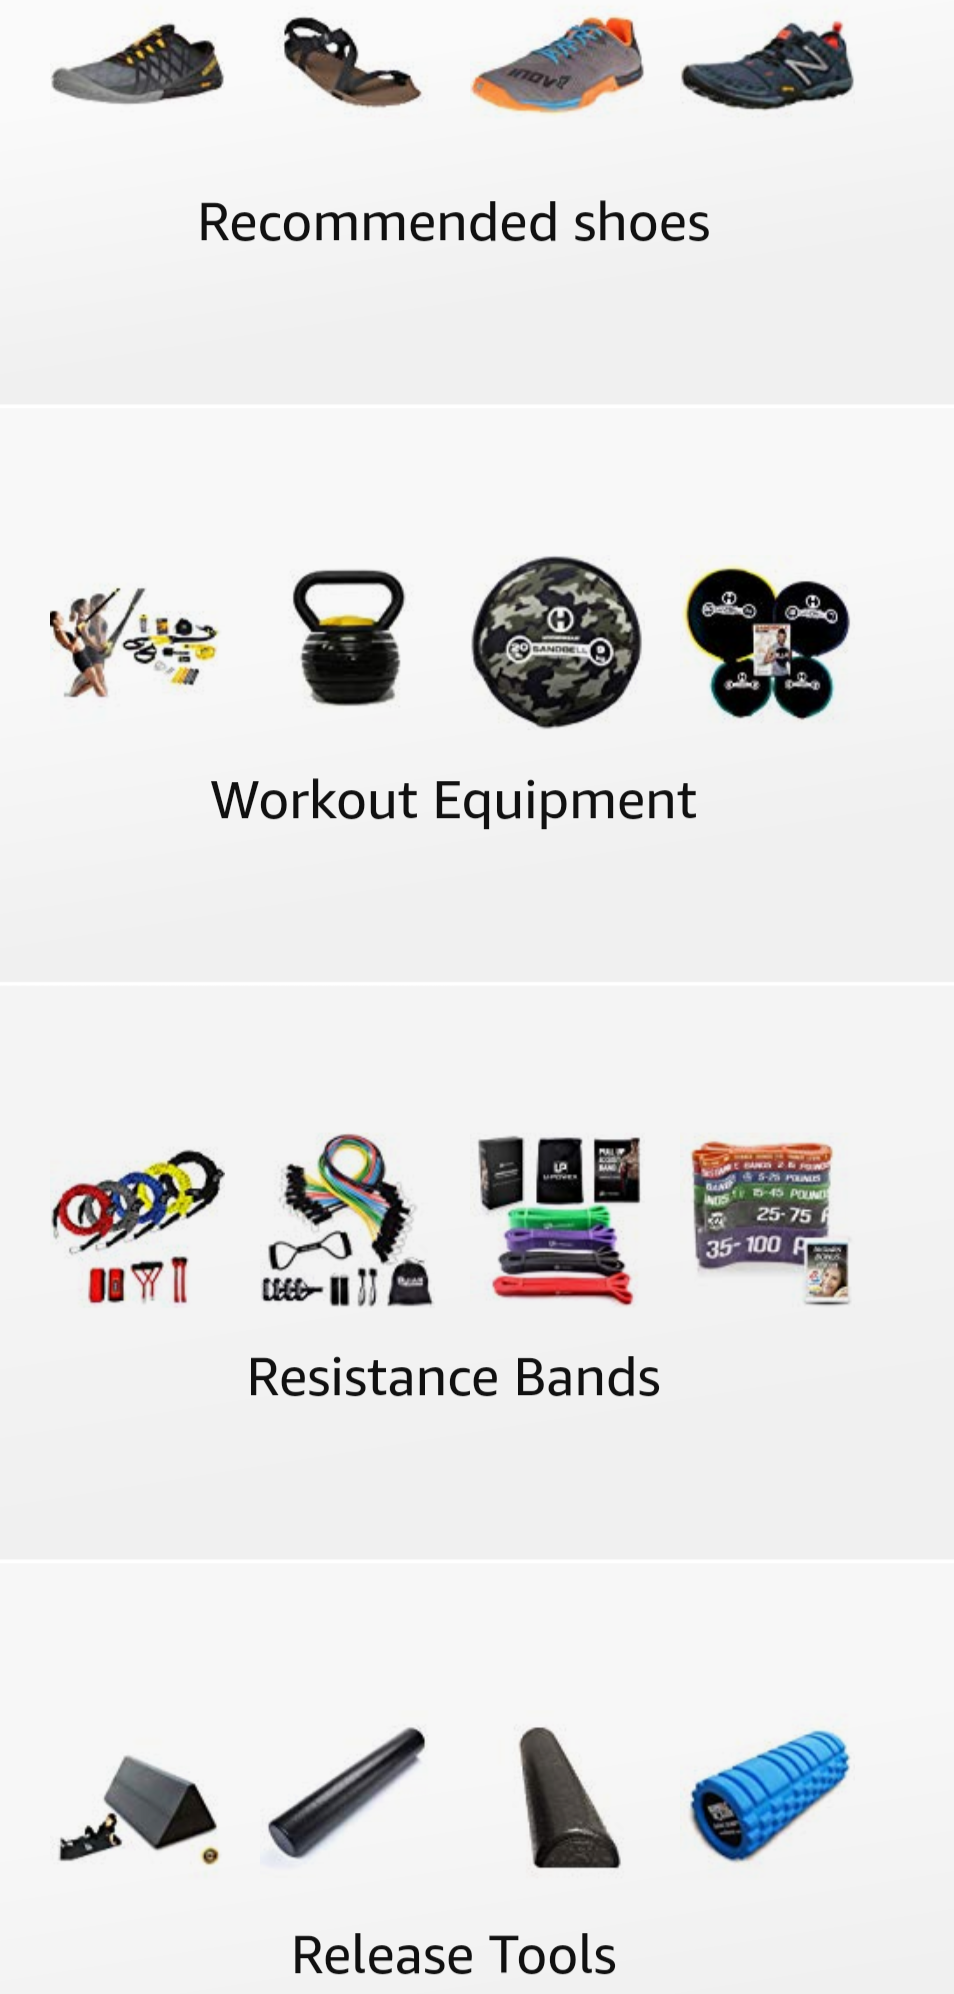 Recommended Equipment - Goodies you can take with you anywhere